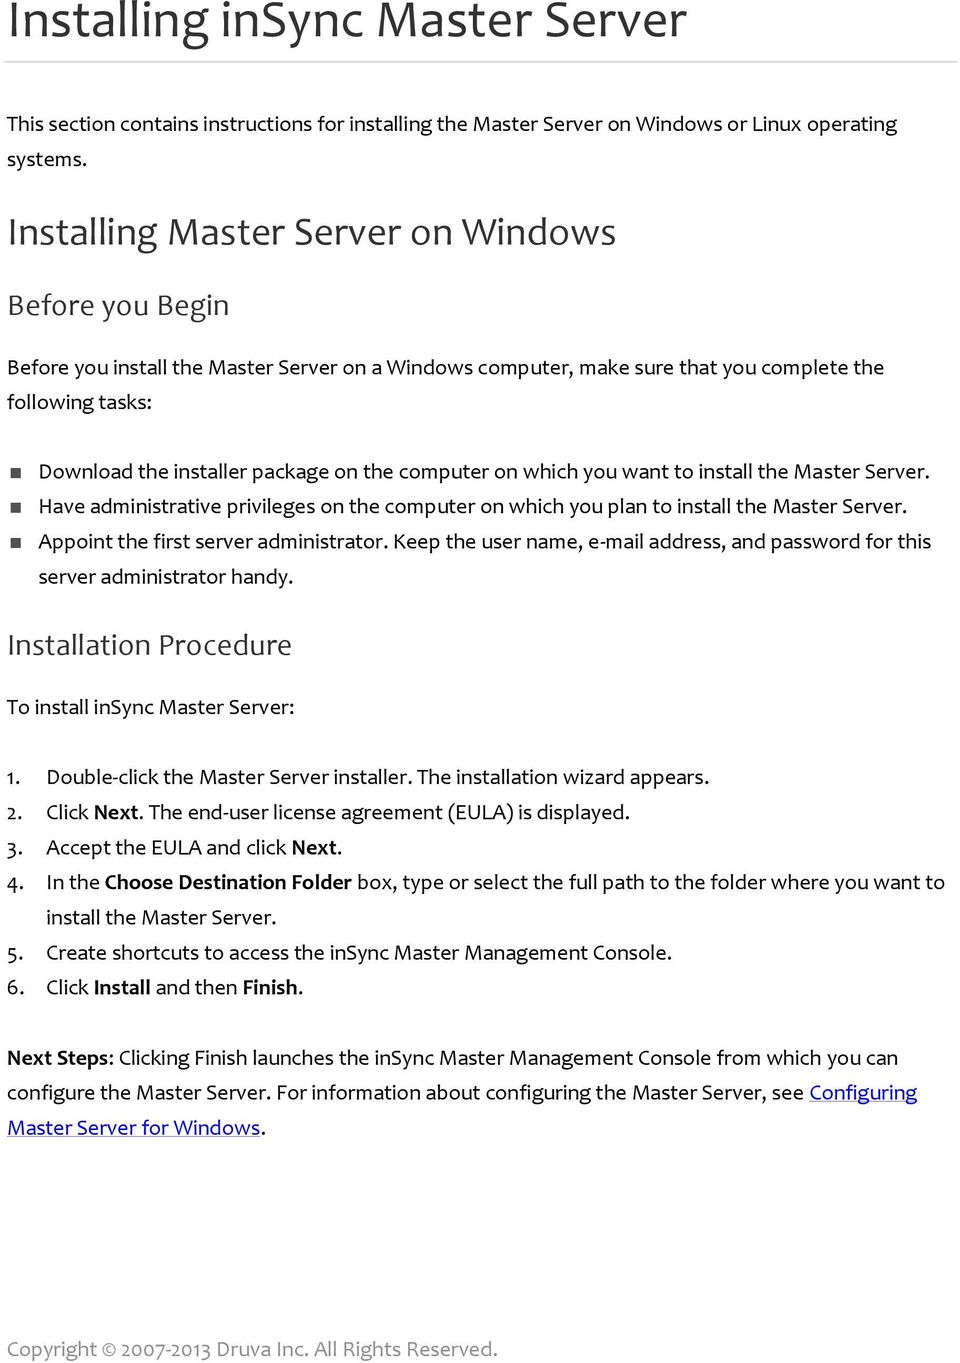 computer on which you want to install the Master Server. Have administrative privileges on the computer on which you plan to install the Master Server. Appoint the first server administrator.